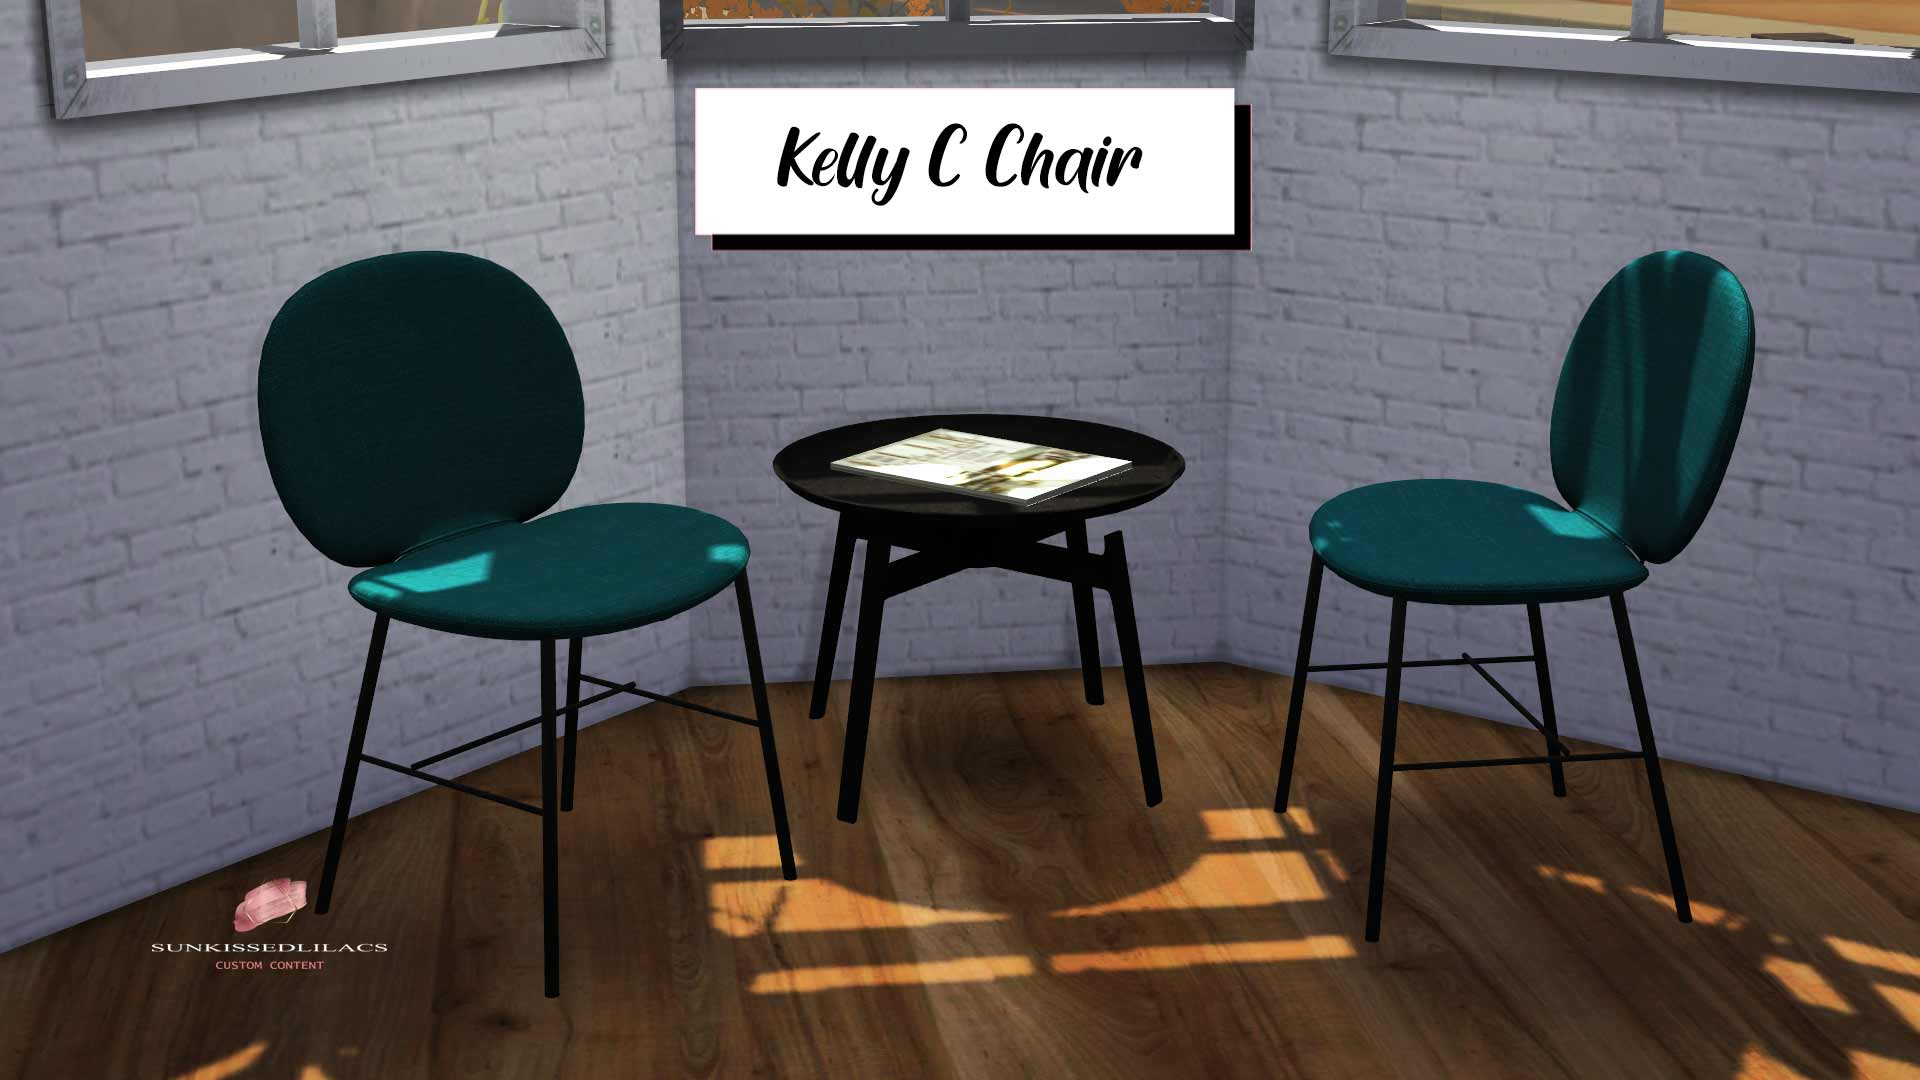 Kelly C Chair, high quality sims 4 cc, sunkissedlilacs, free sims 4 furniture, sims 4 custom content,